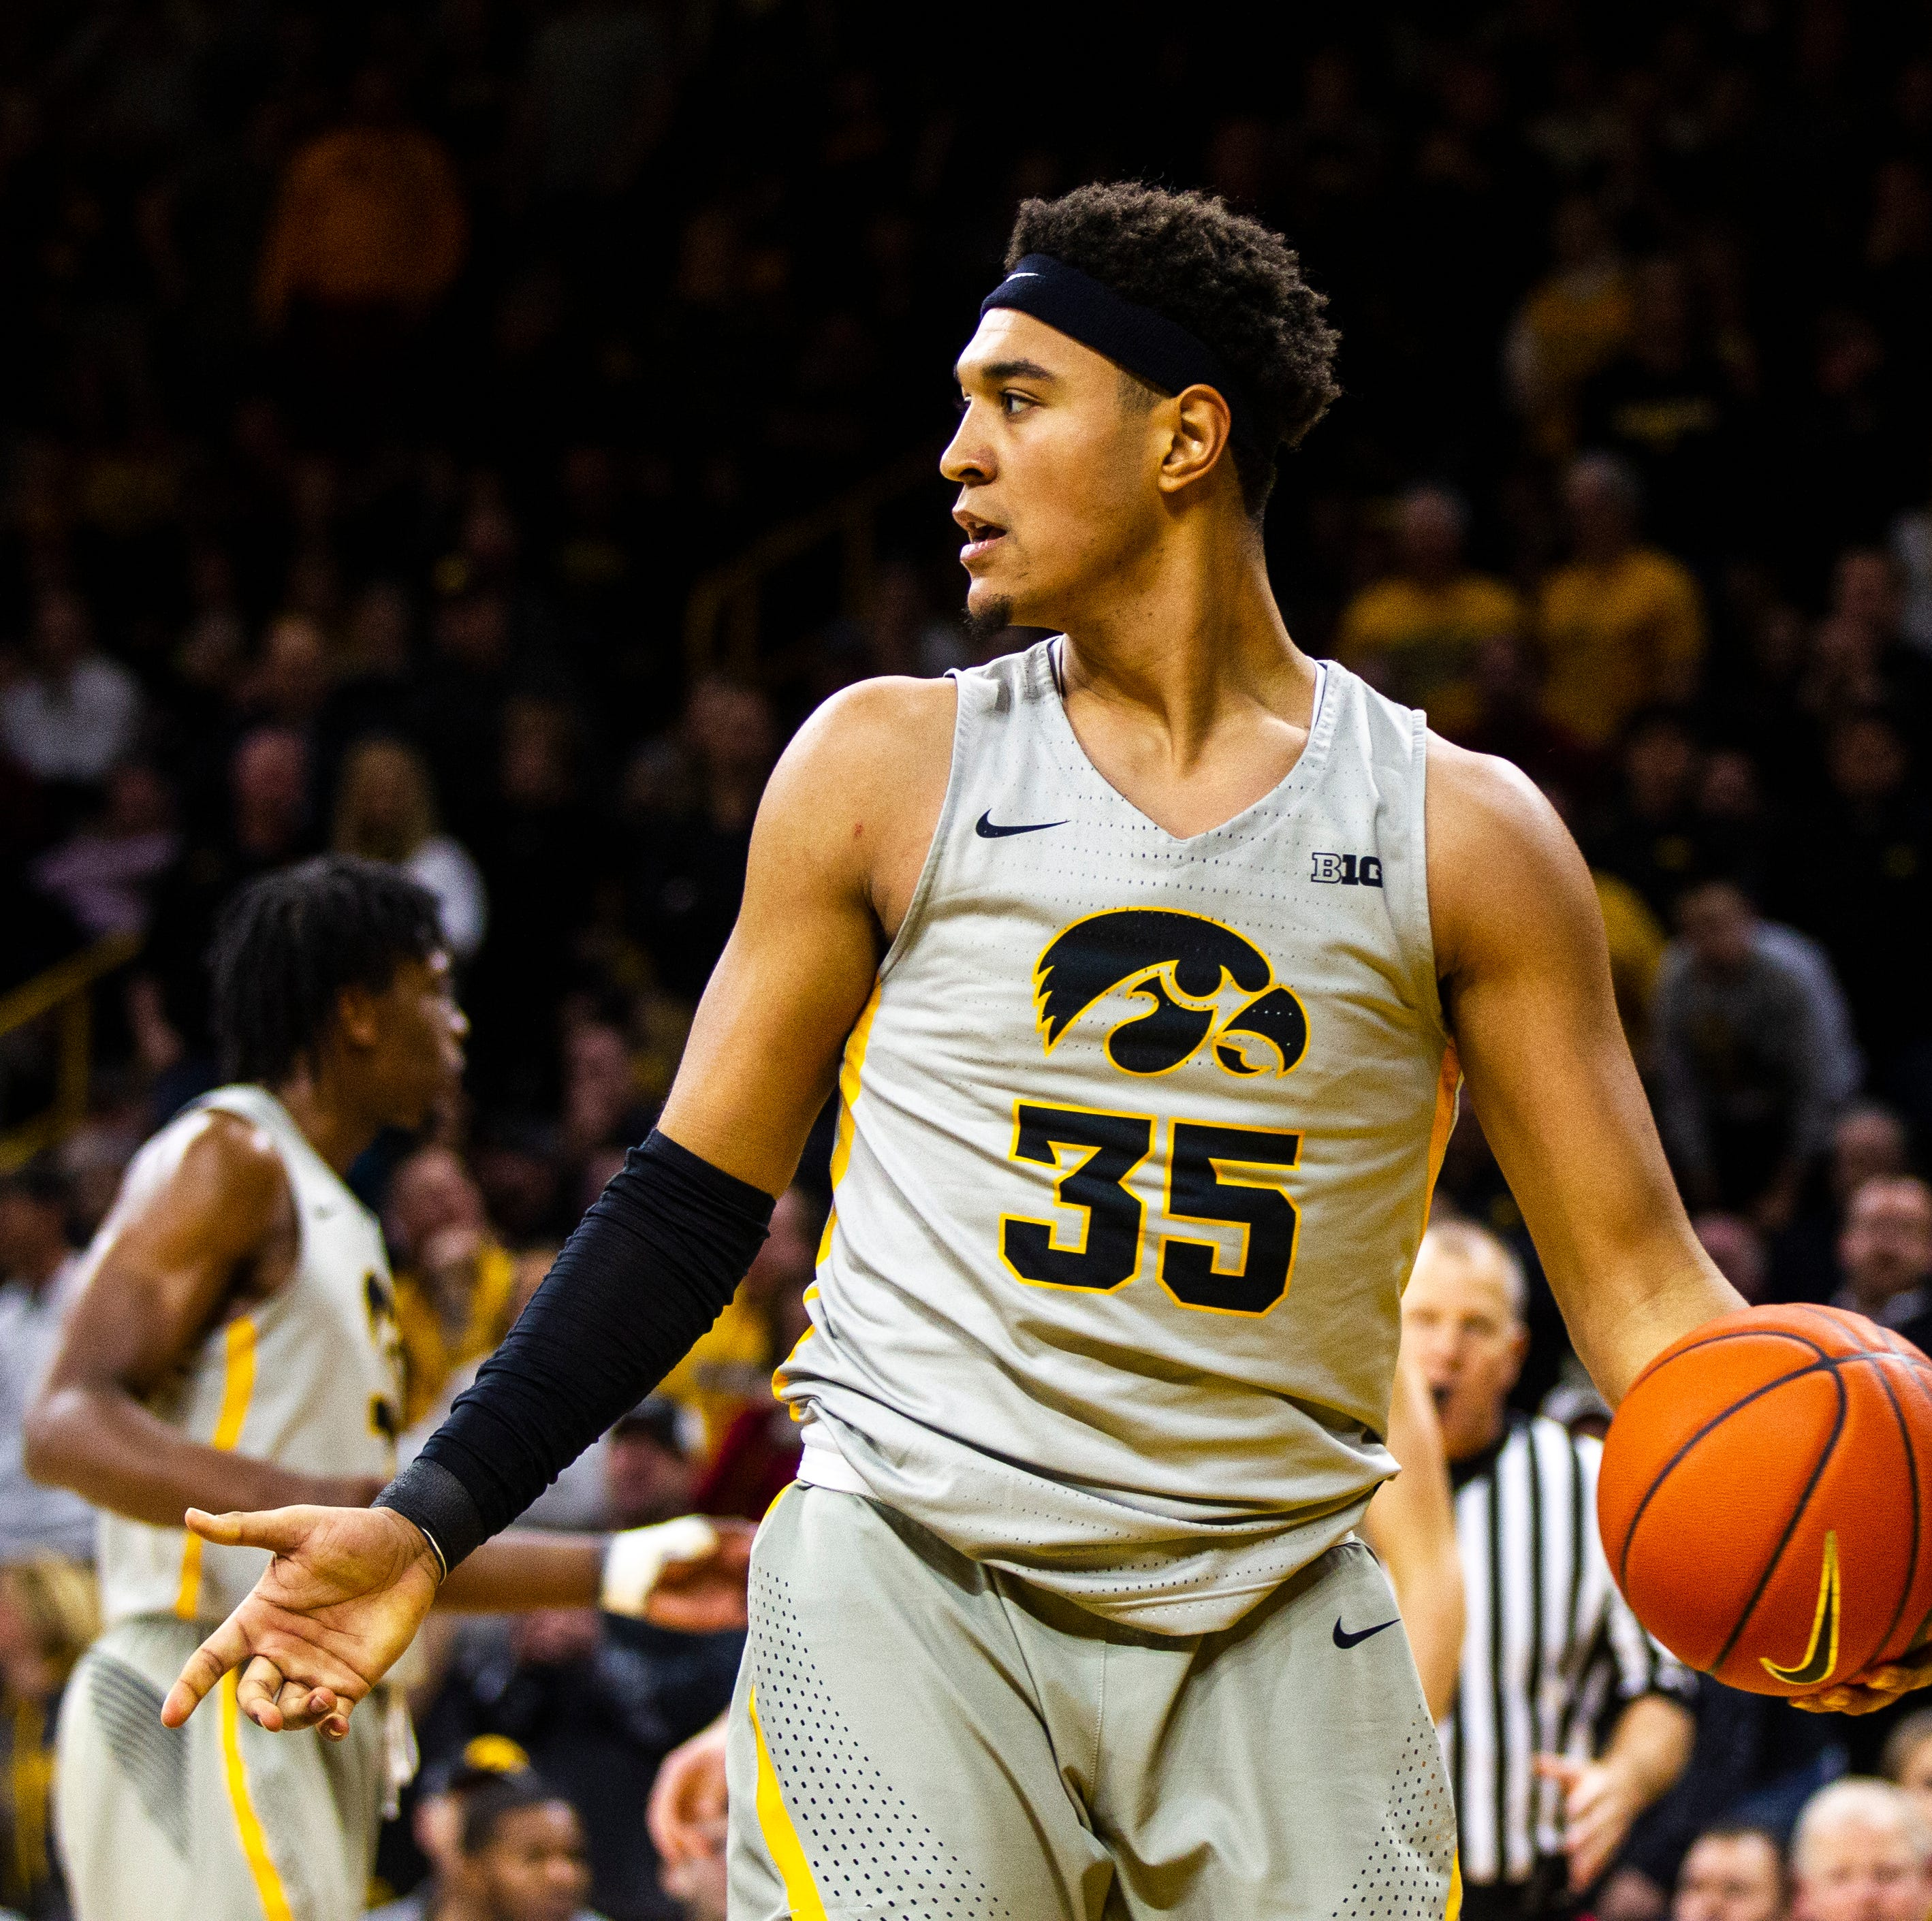 Iowa forward Cordell Pemsl gets his hardship waiver and an extra year of eligibility